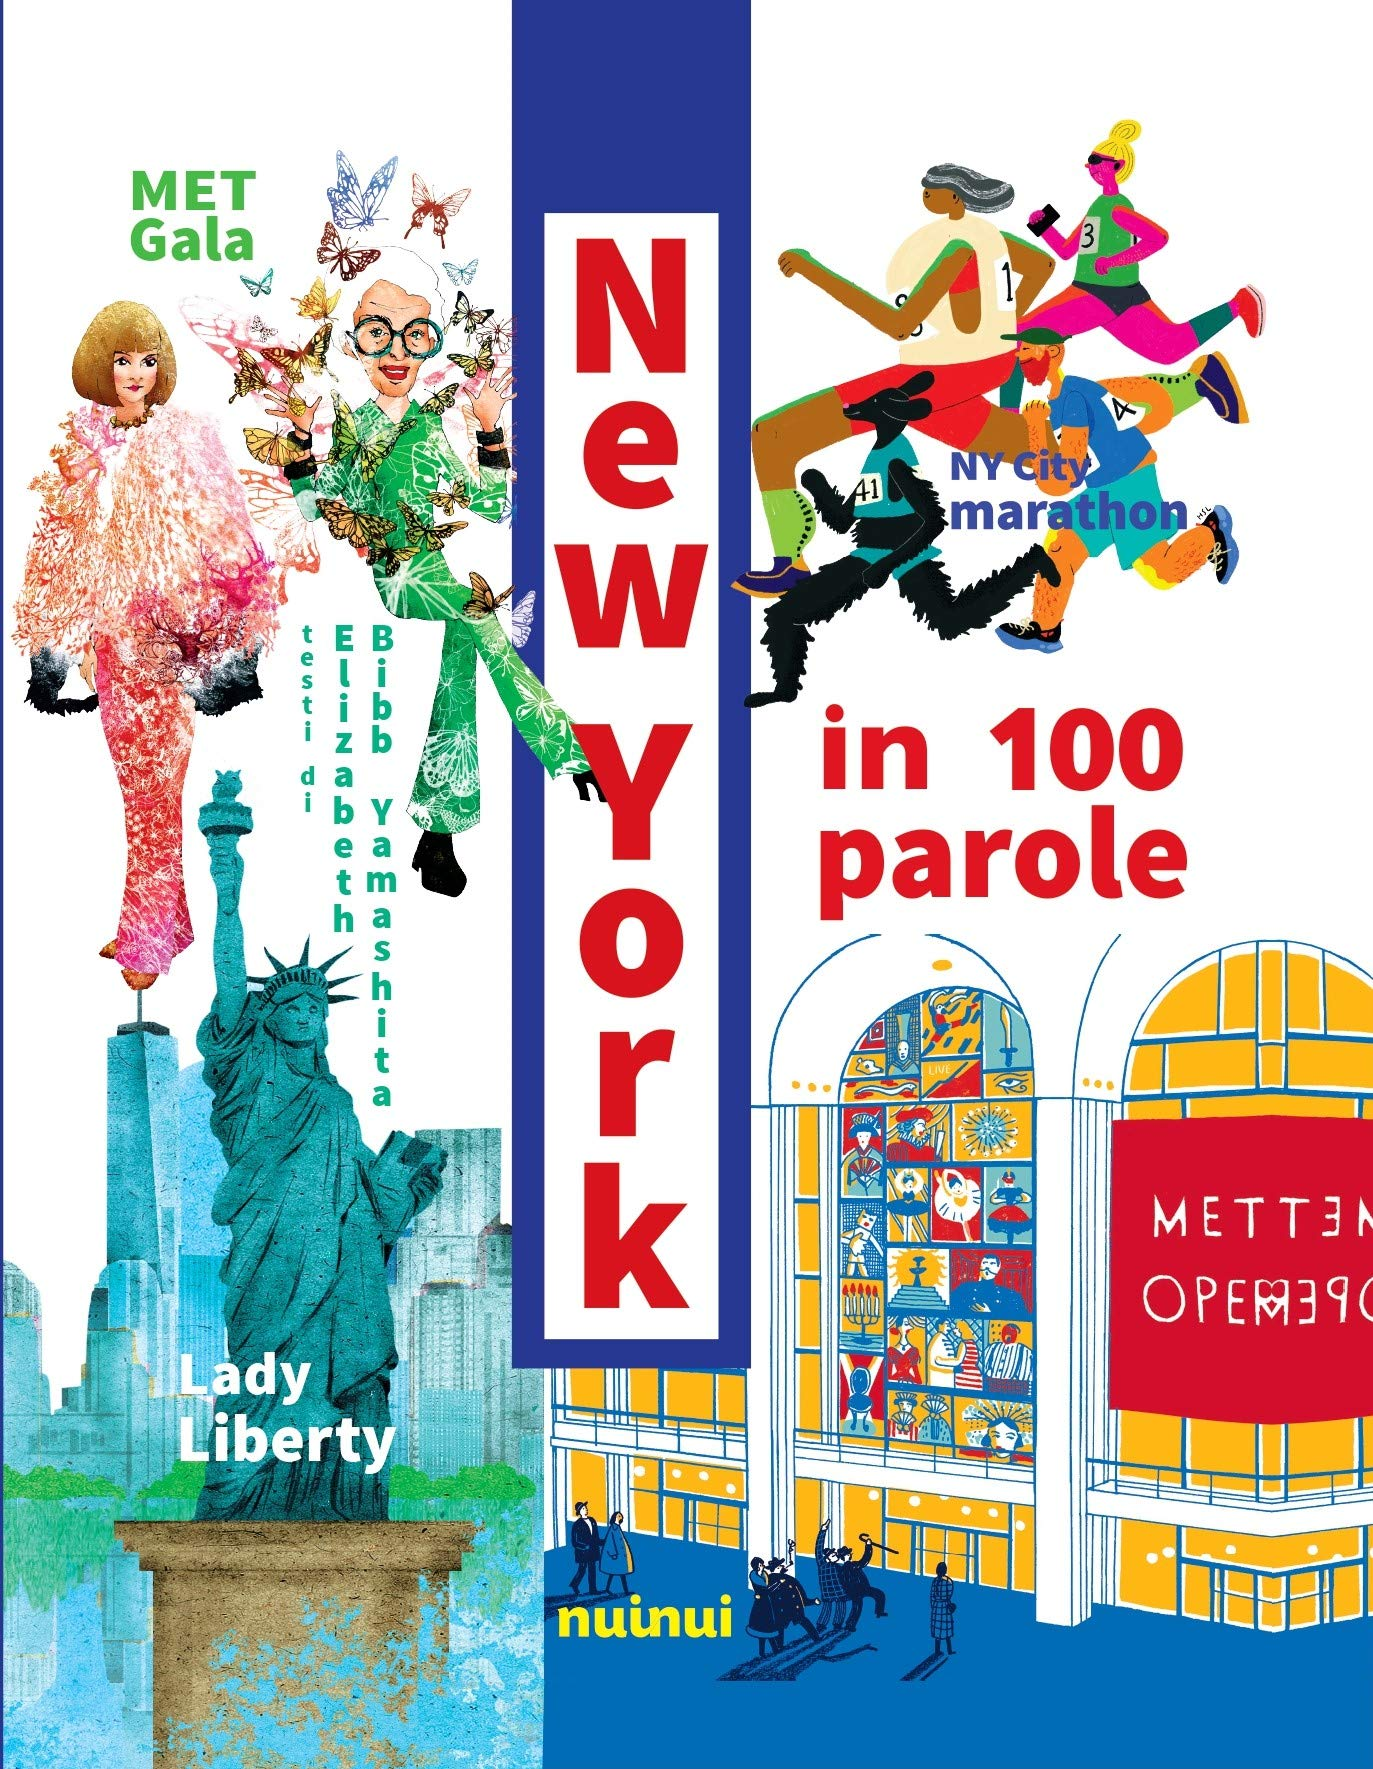 New York in 100 parole